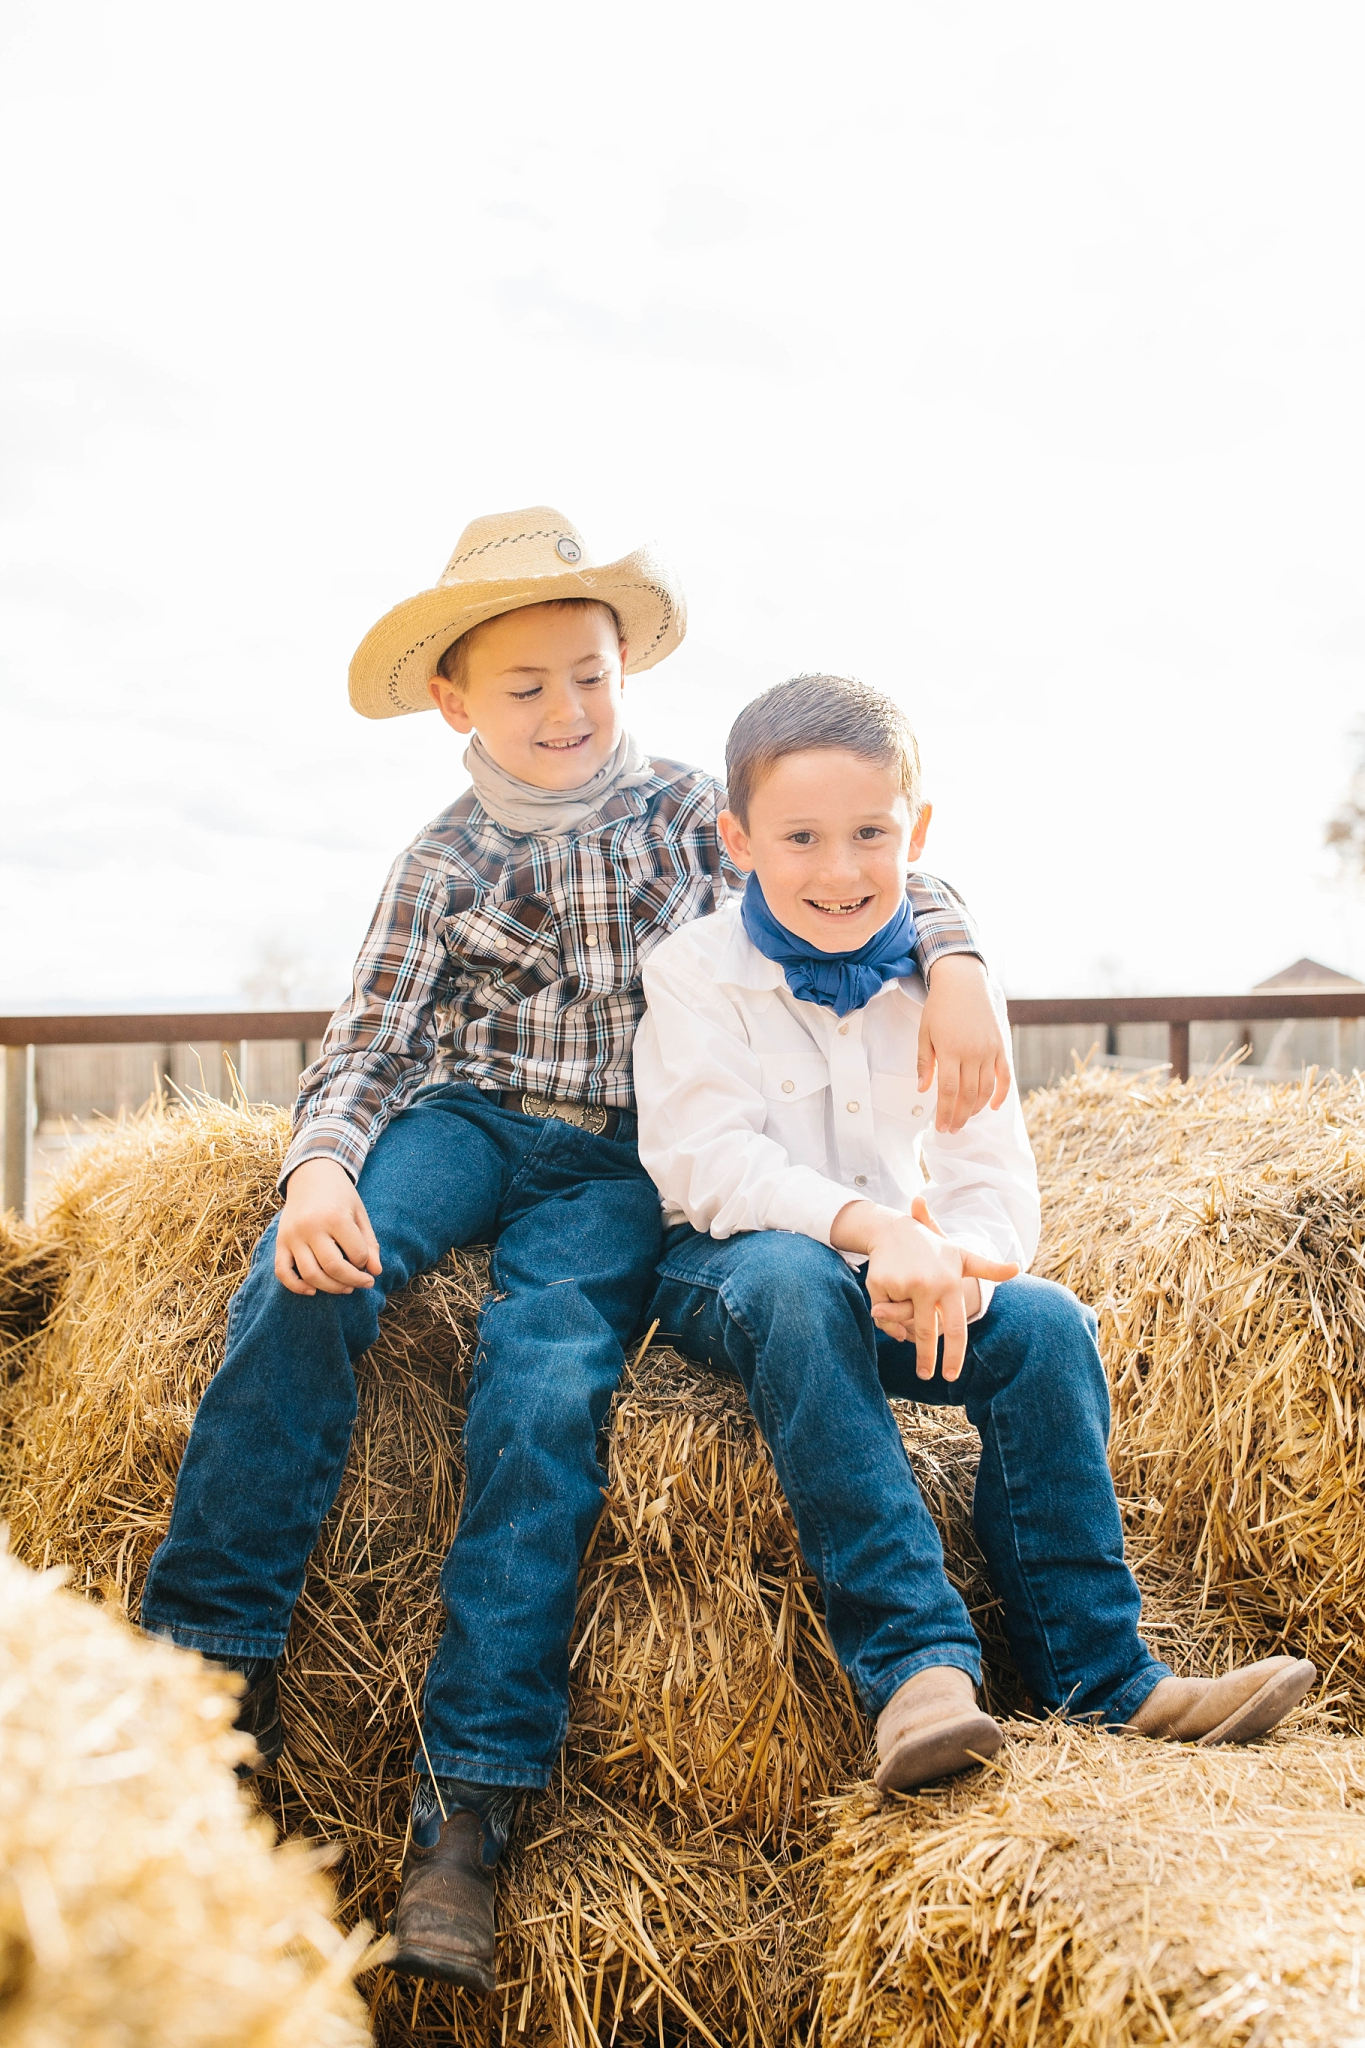 Lister-23_Lizzie-B-Imagery-Utah-Family-Photographer-Lifestyle-Photography-Salt-Lake-City-Park-City-Utah-County-Farm-Family-Session.jpg